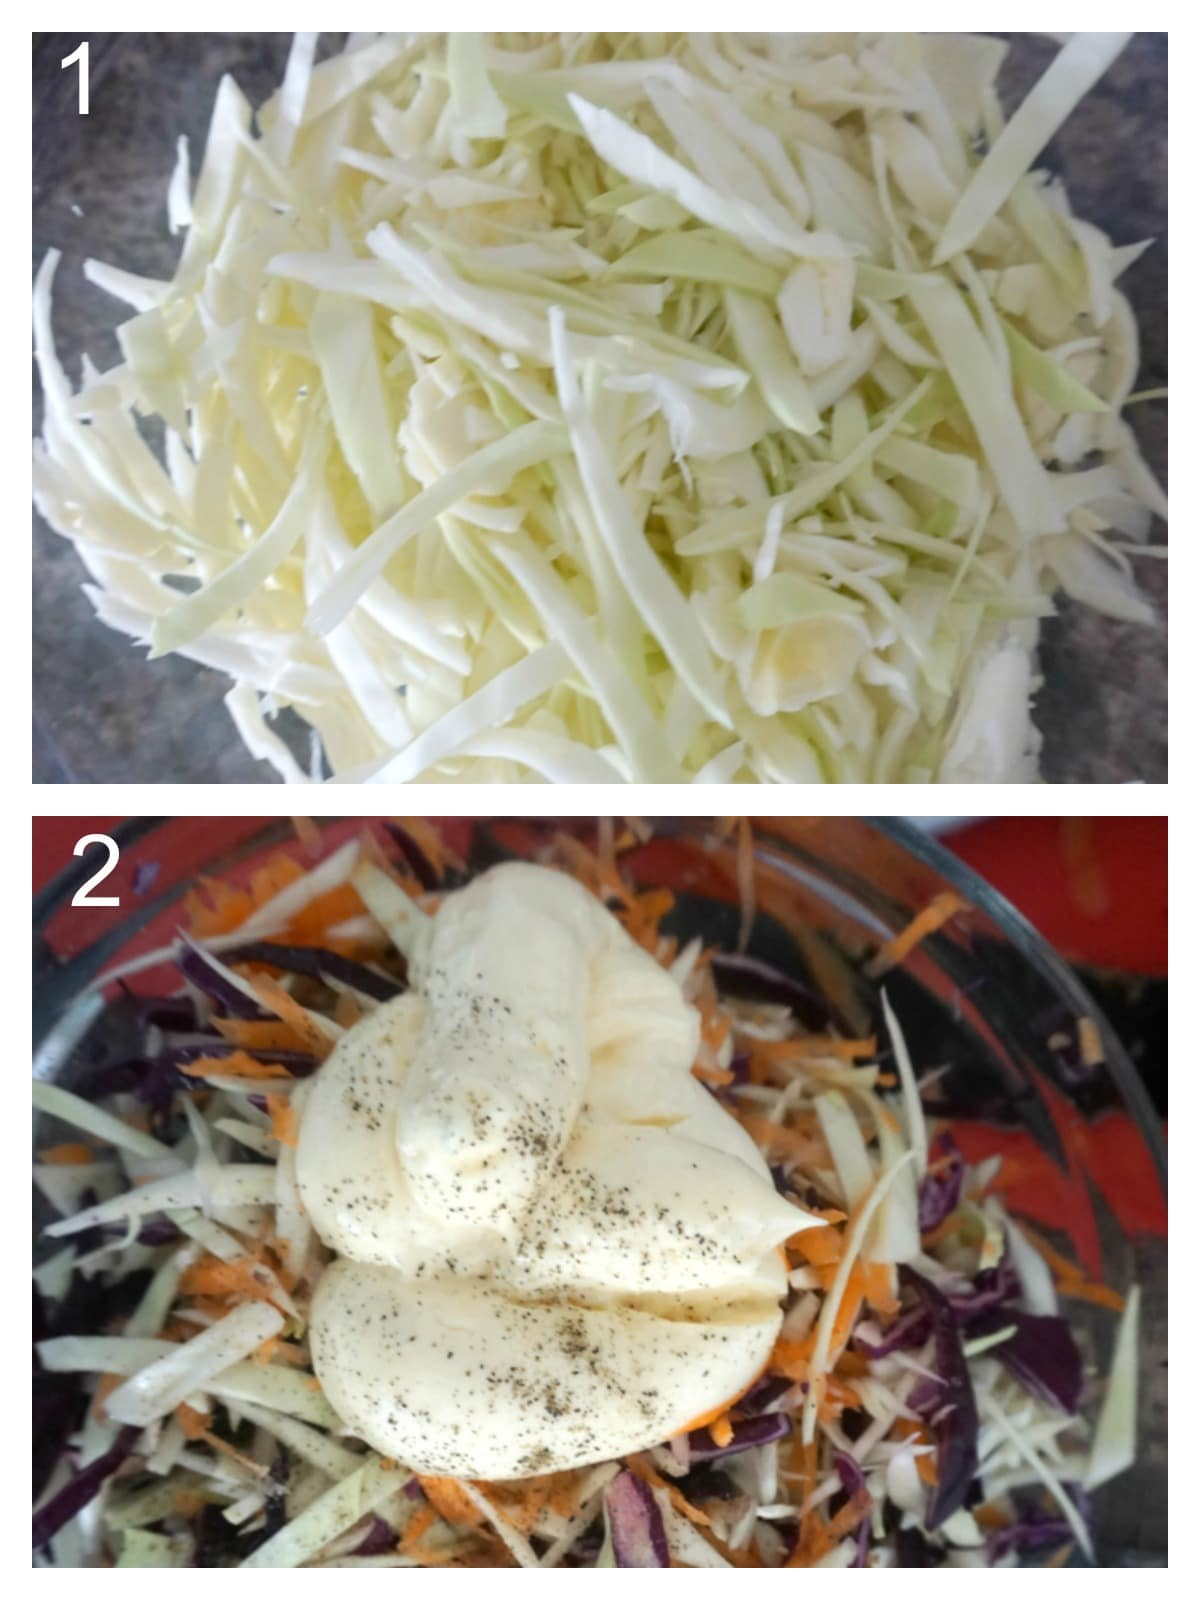 Collage of 2 photos to show how to make dill coleslaw